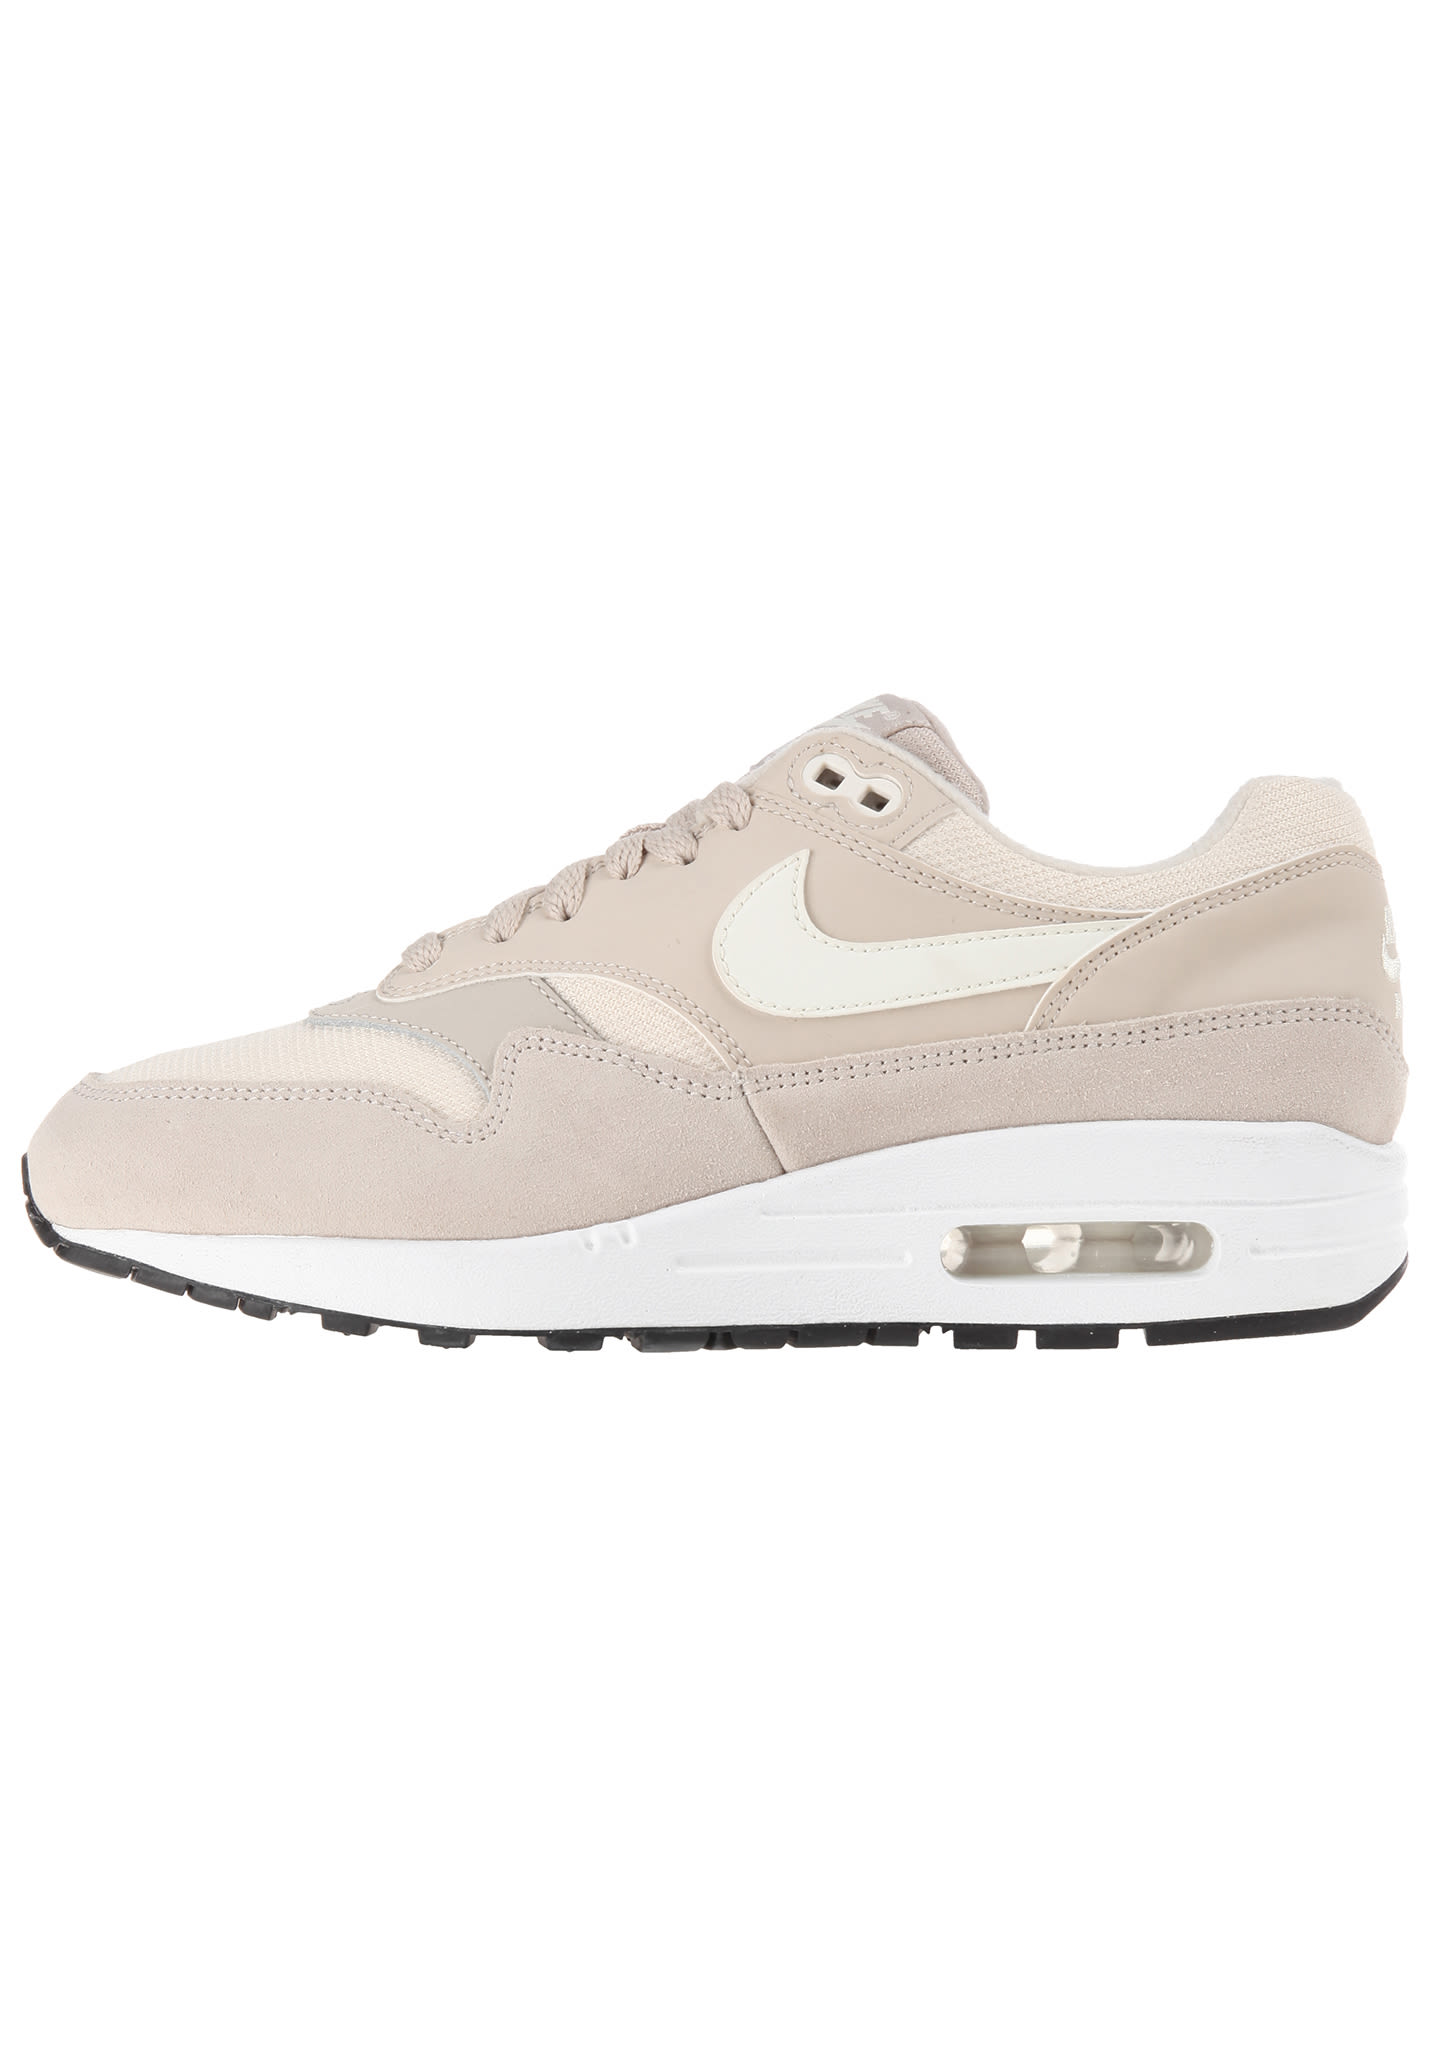 reputable site 34825 03a18 NIKE SPORTSWEAR Air Max 1 - Baskets pour Femme - Beige - Pla